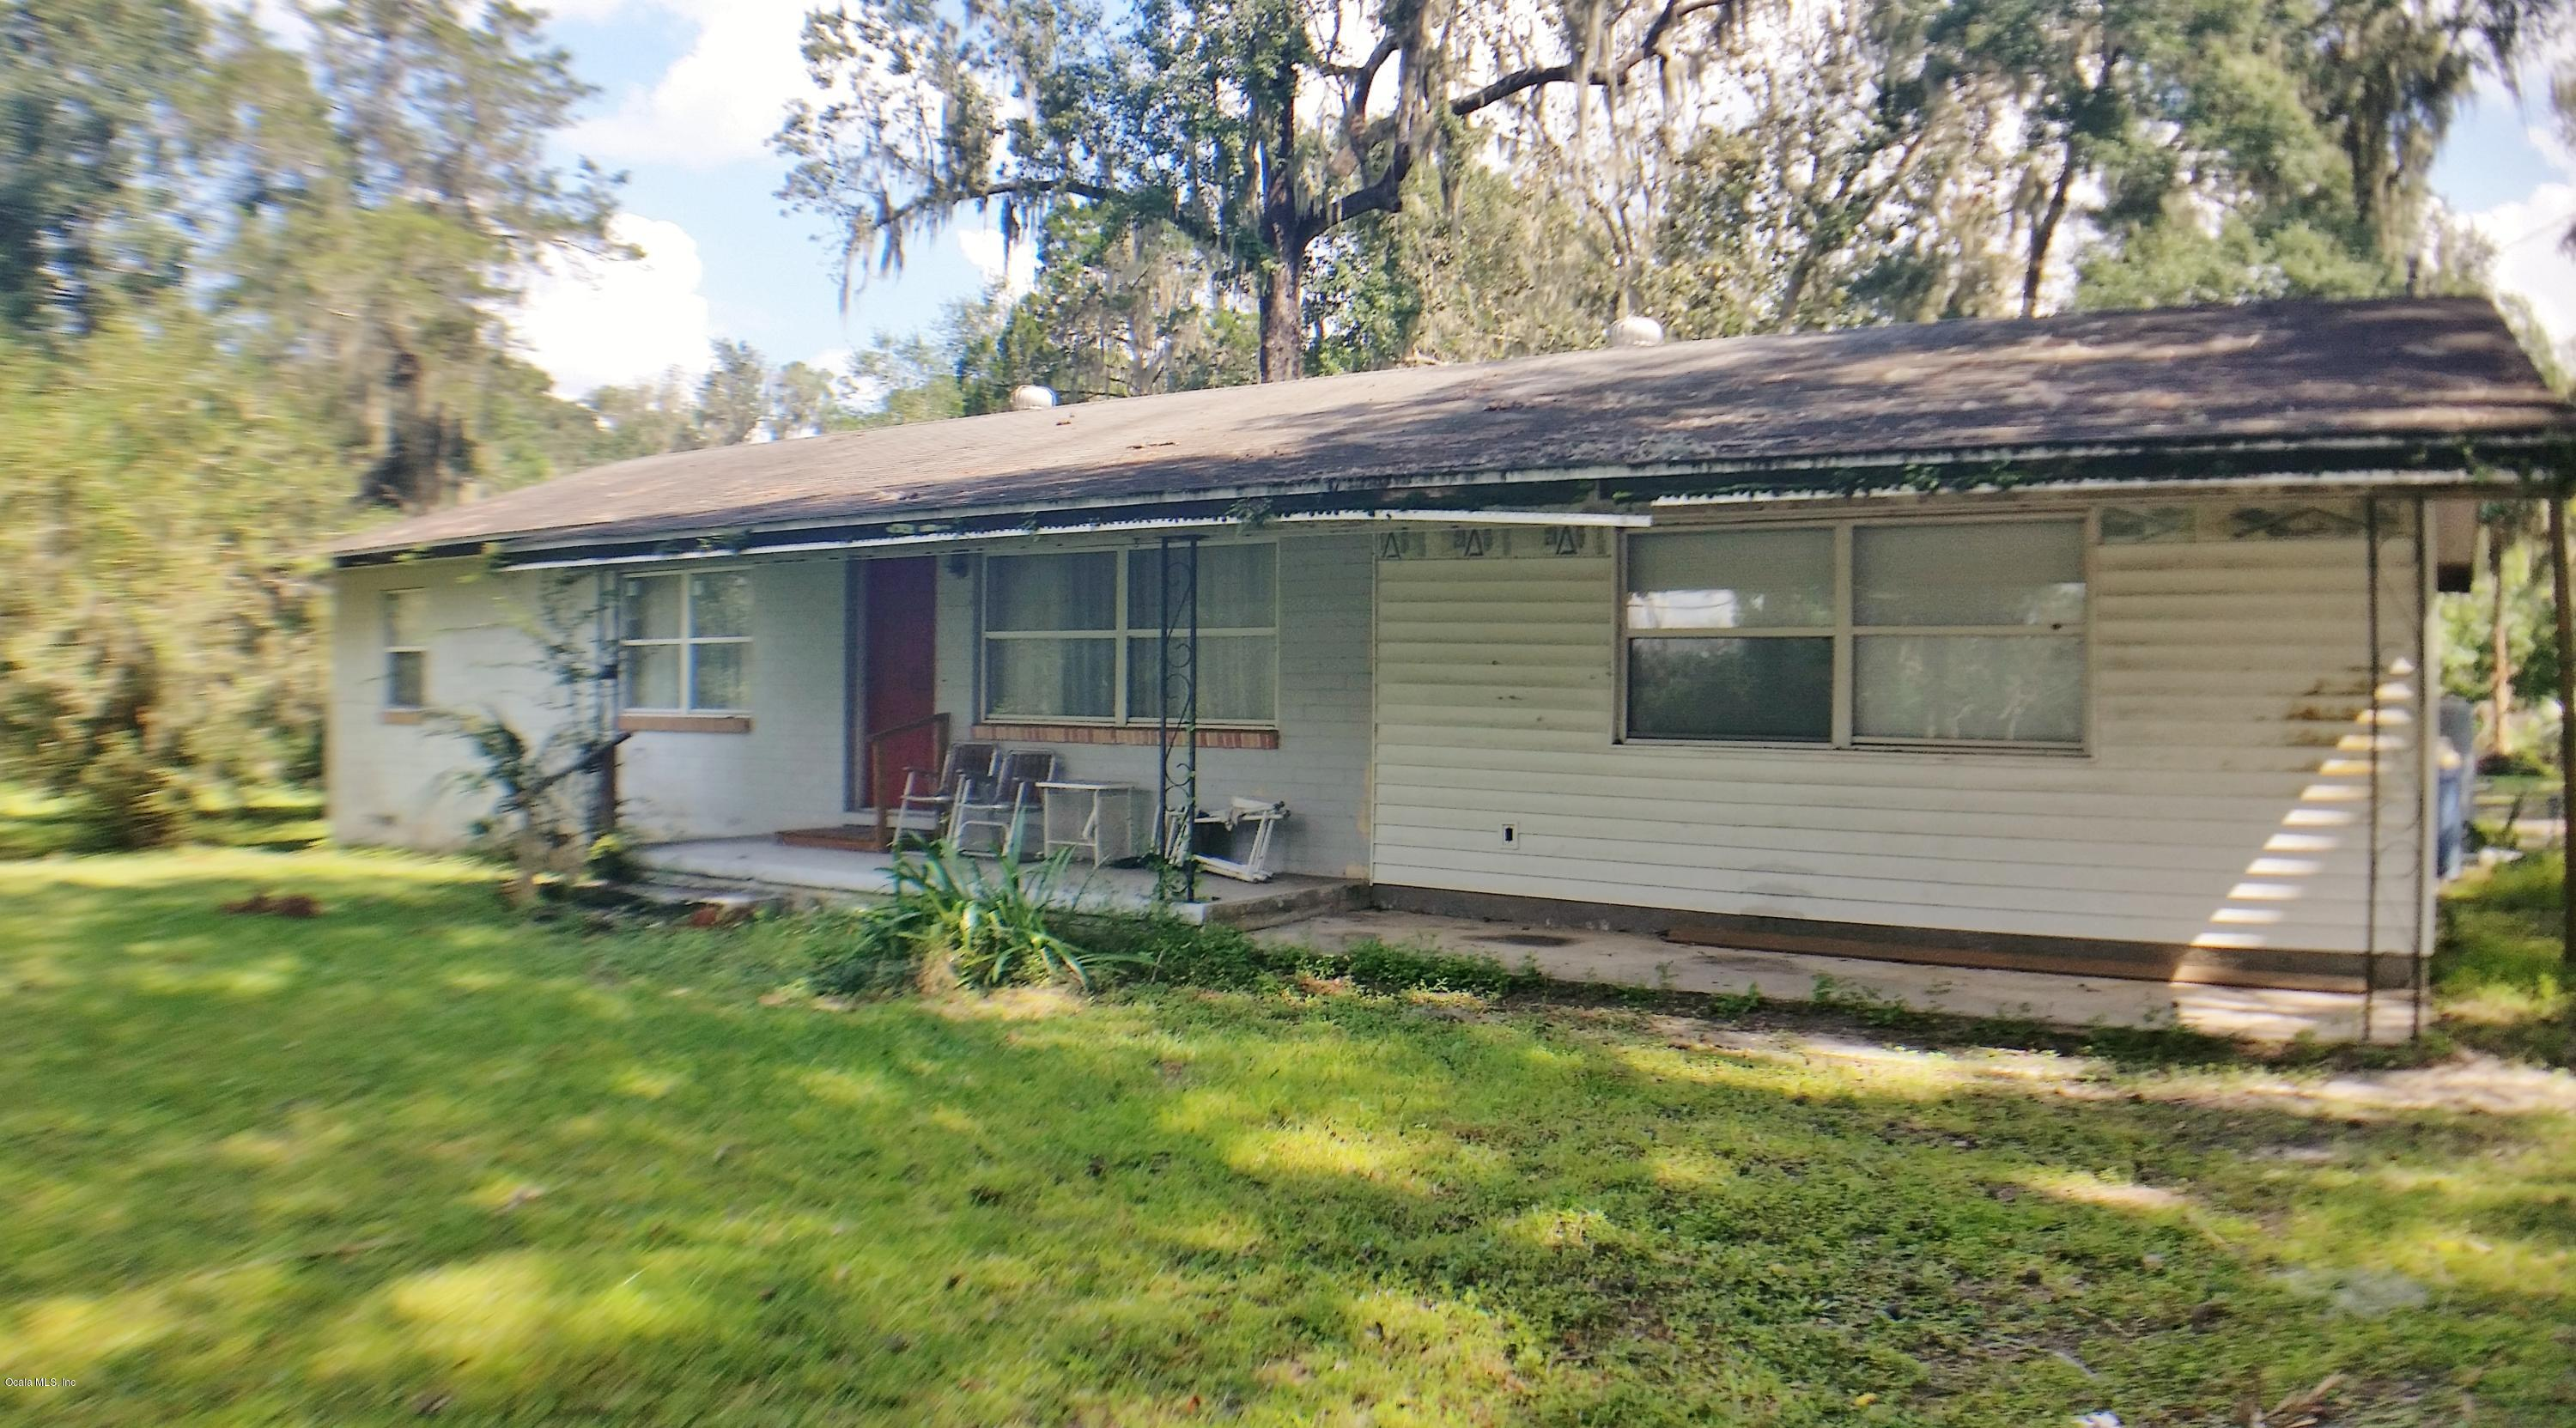 7655 SW 27TH AVENUE, OCALA, FL 34476